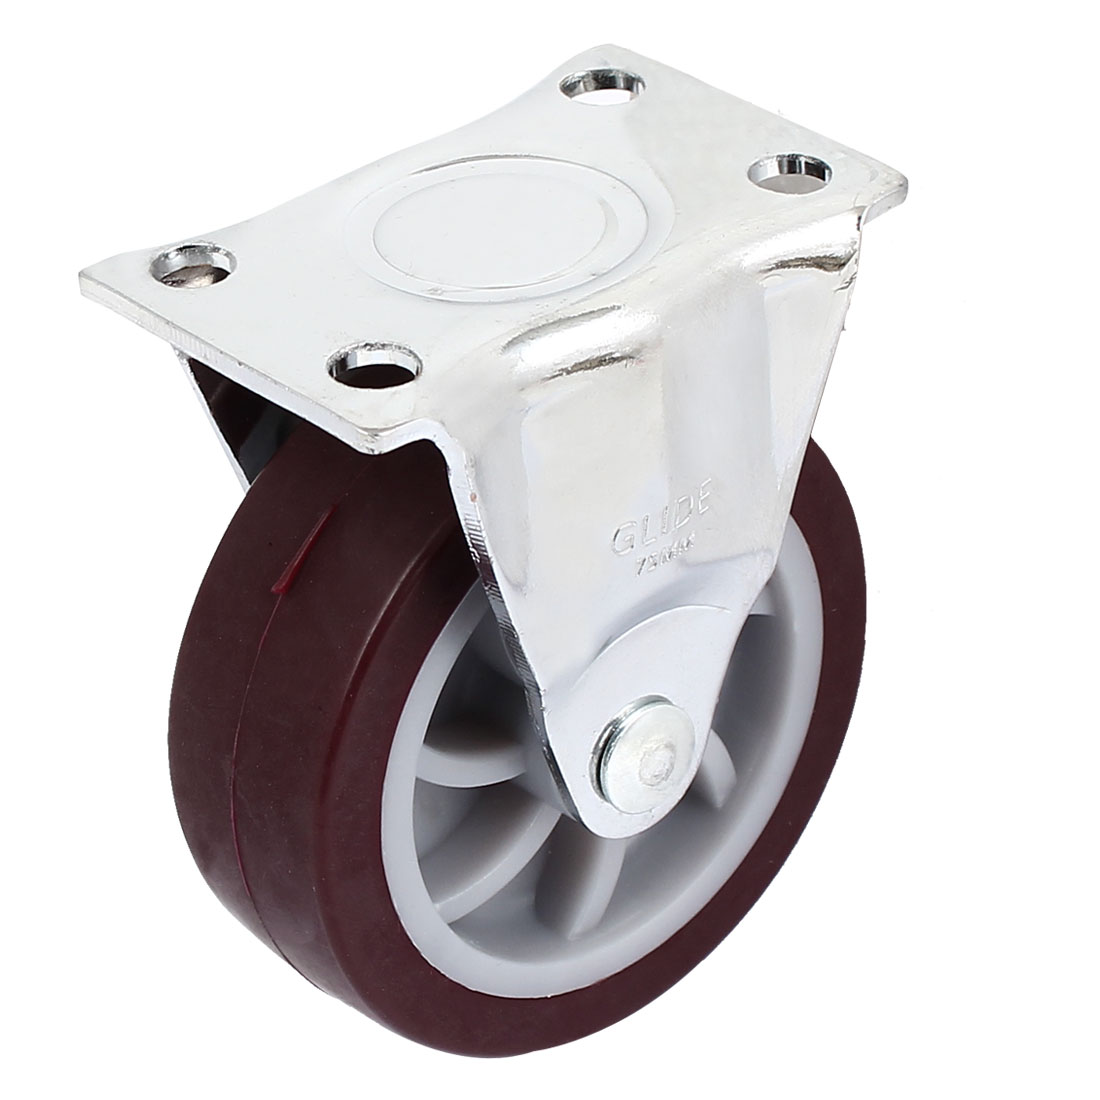 75mm Hard Rubber Base Metal Top Plate Bearing Caster Wheels